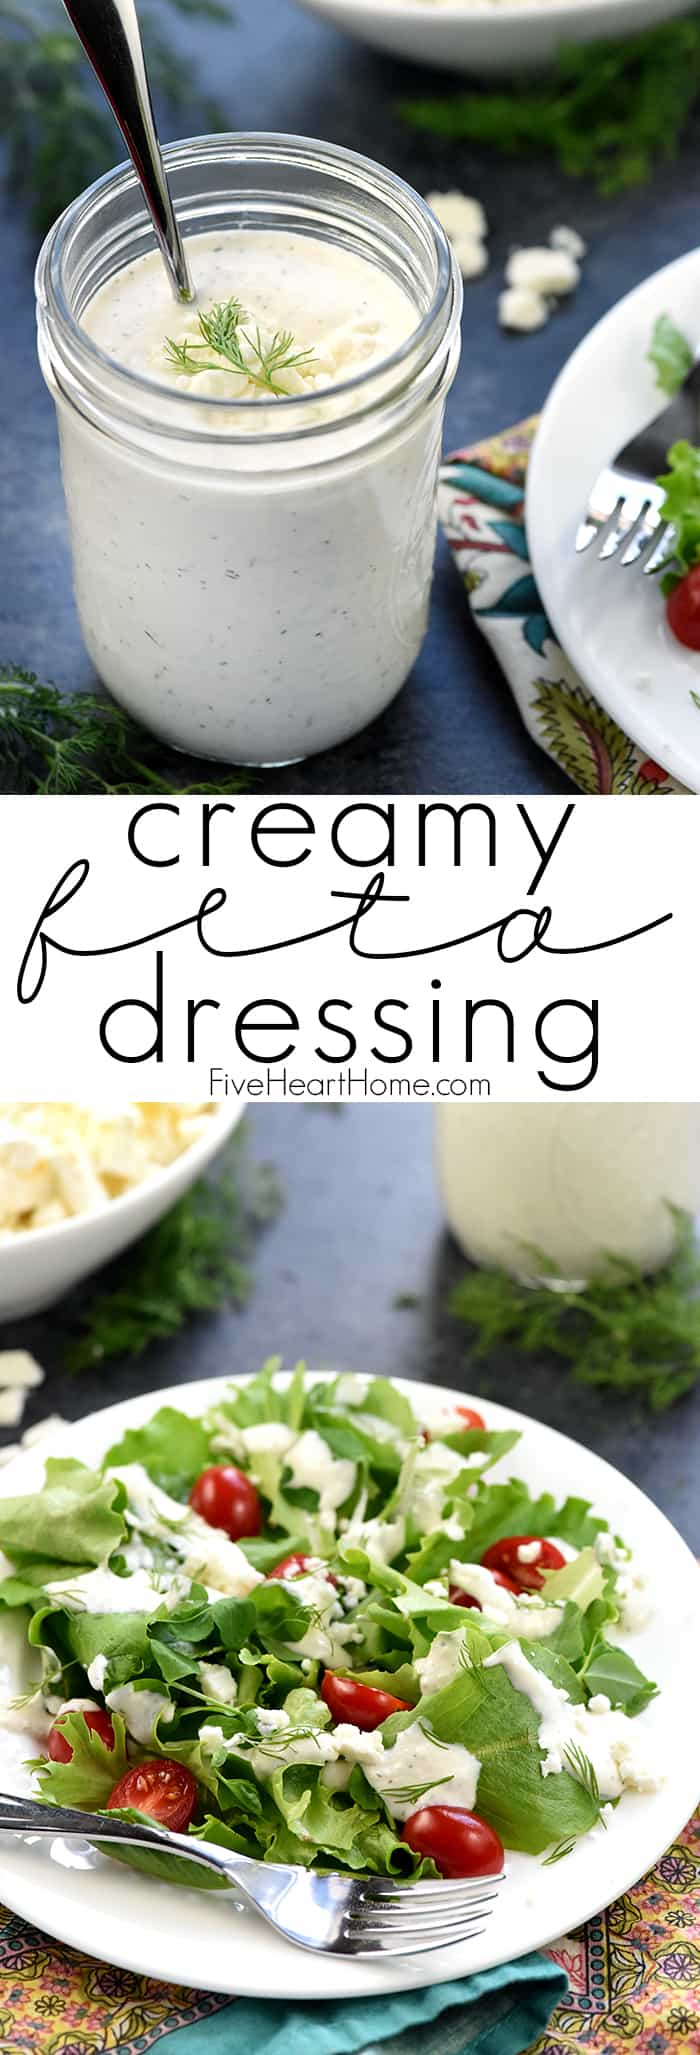 Creamy Feta Dressing Collage with Text Overlay